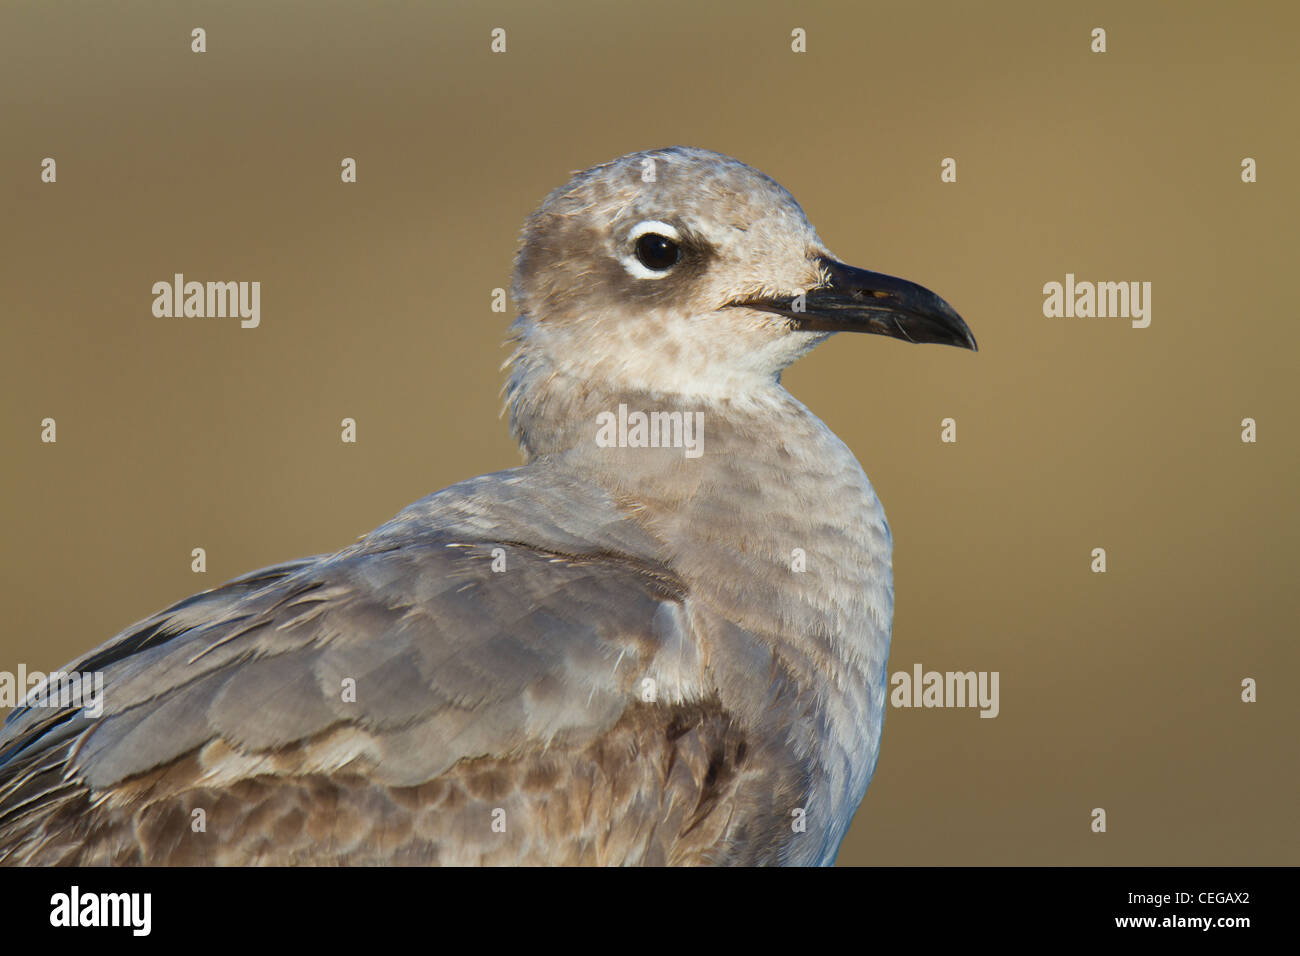 First-winter Laughing Gull (Larus atricilla) - Stock Image